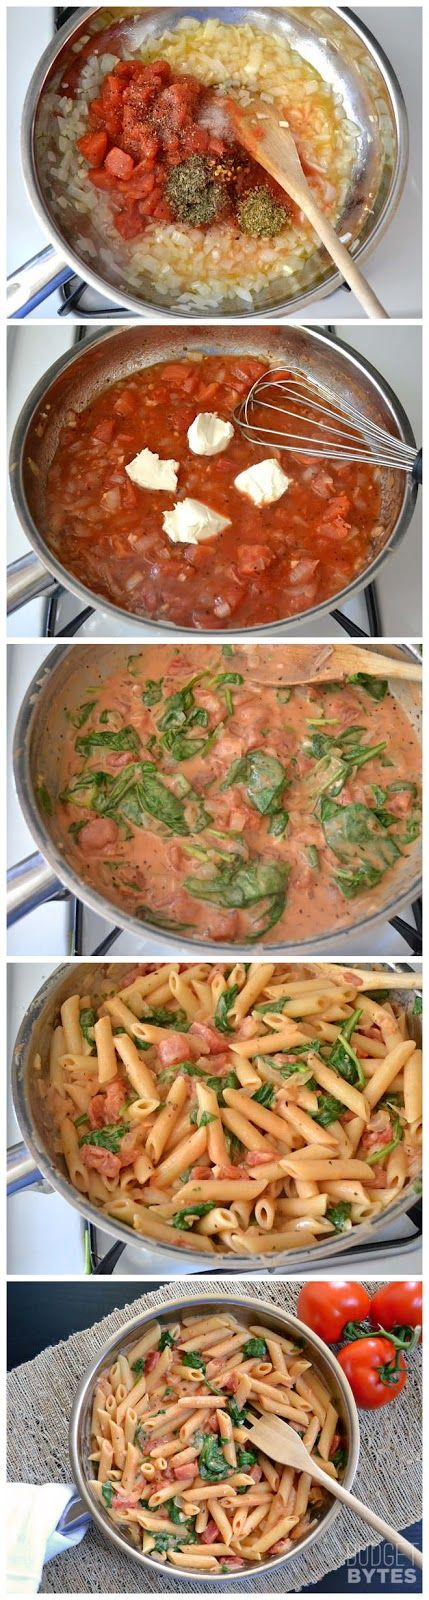 Creamy Tomato Spinach Pasta. This was sooo yummy, especially the leftovers. Total comfort food. Used Neufchâtel cheese. Would be good with Italian sausage, but delicious without! Note: boil spinach in pasta water vs wilting in sauce.